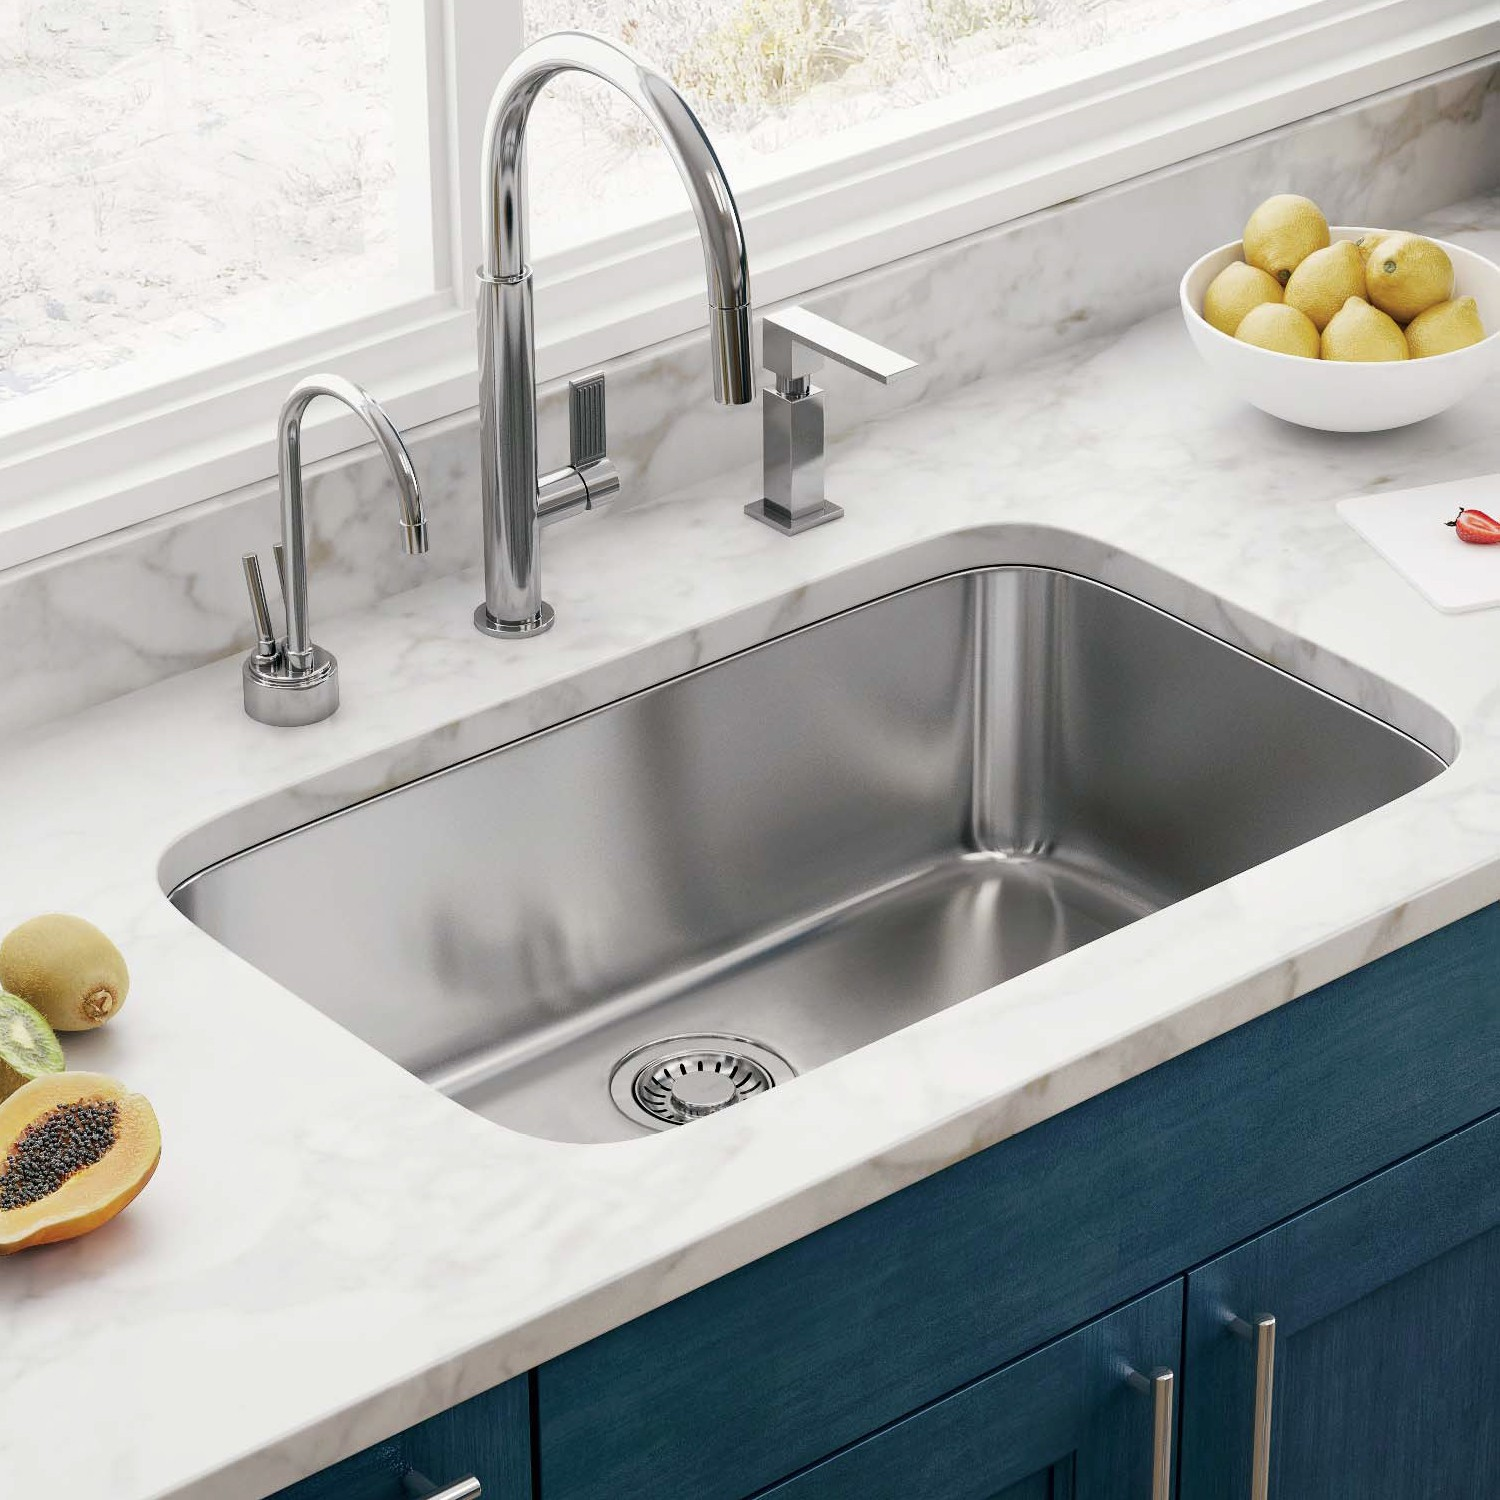 kubus-single-bowl-undermount-kitchen-sink-from-frankeybath